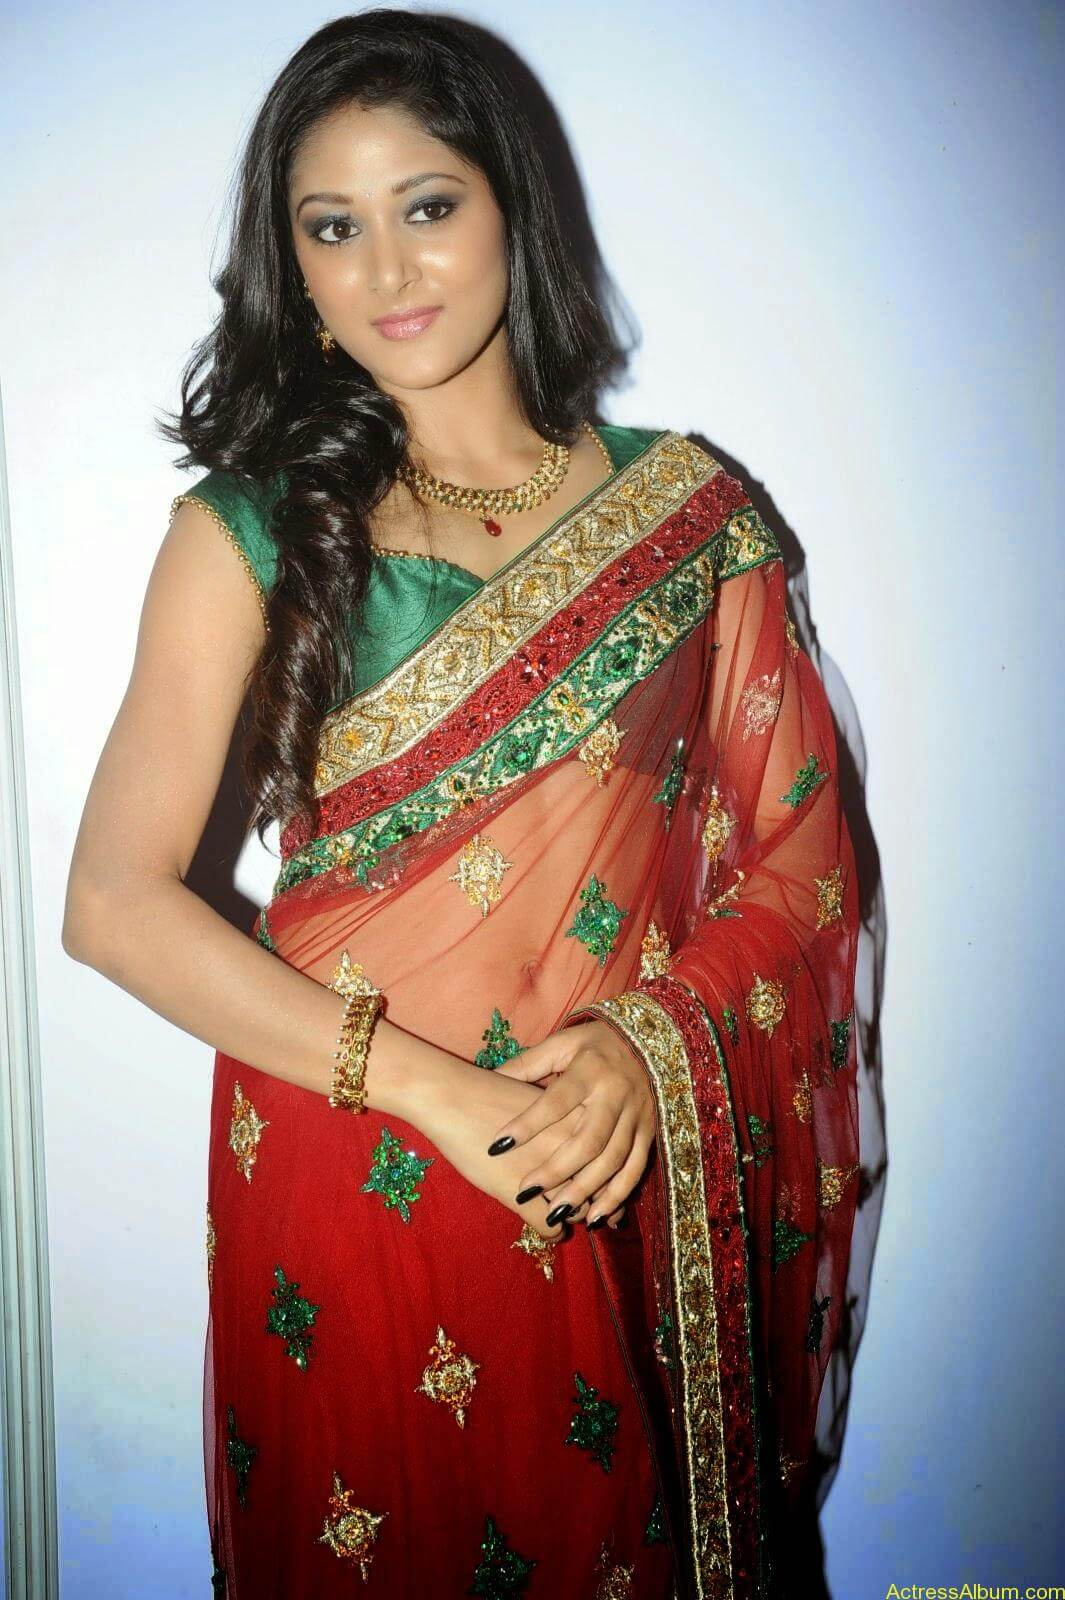 Sushma Raj Hot Navel Pics In Transparent Saree Photos3